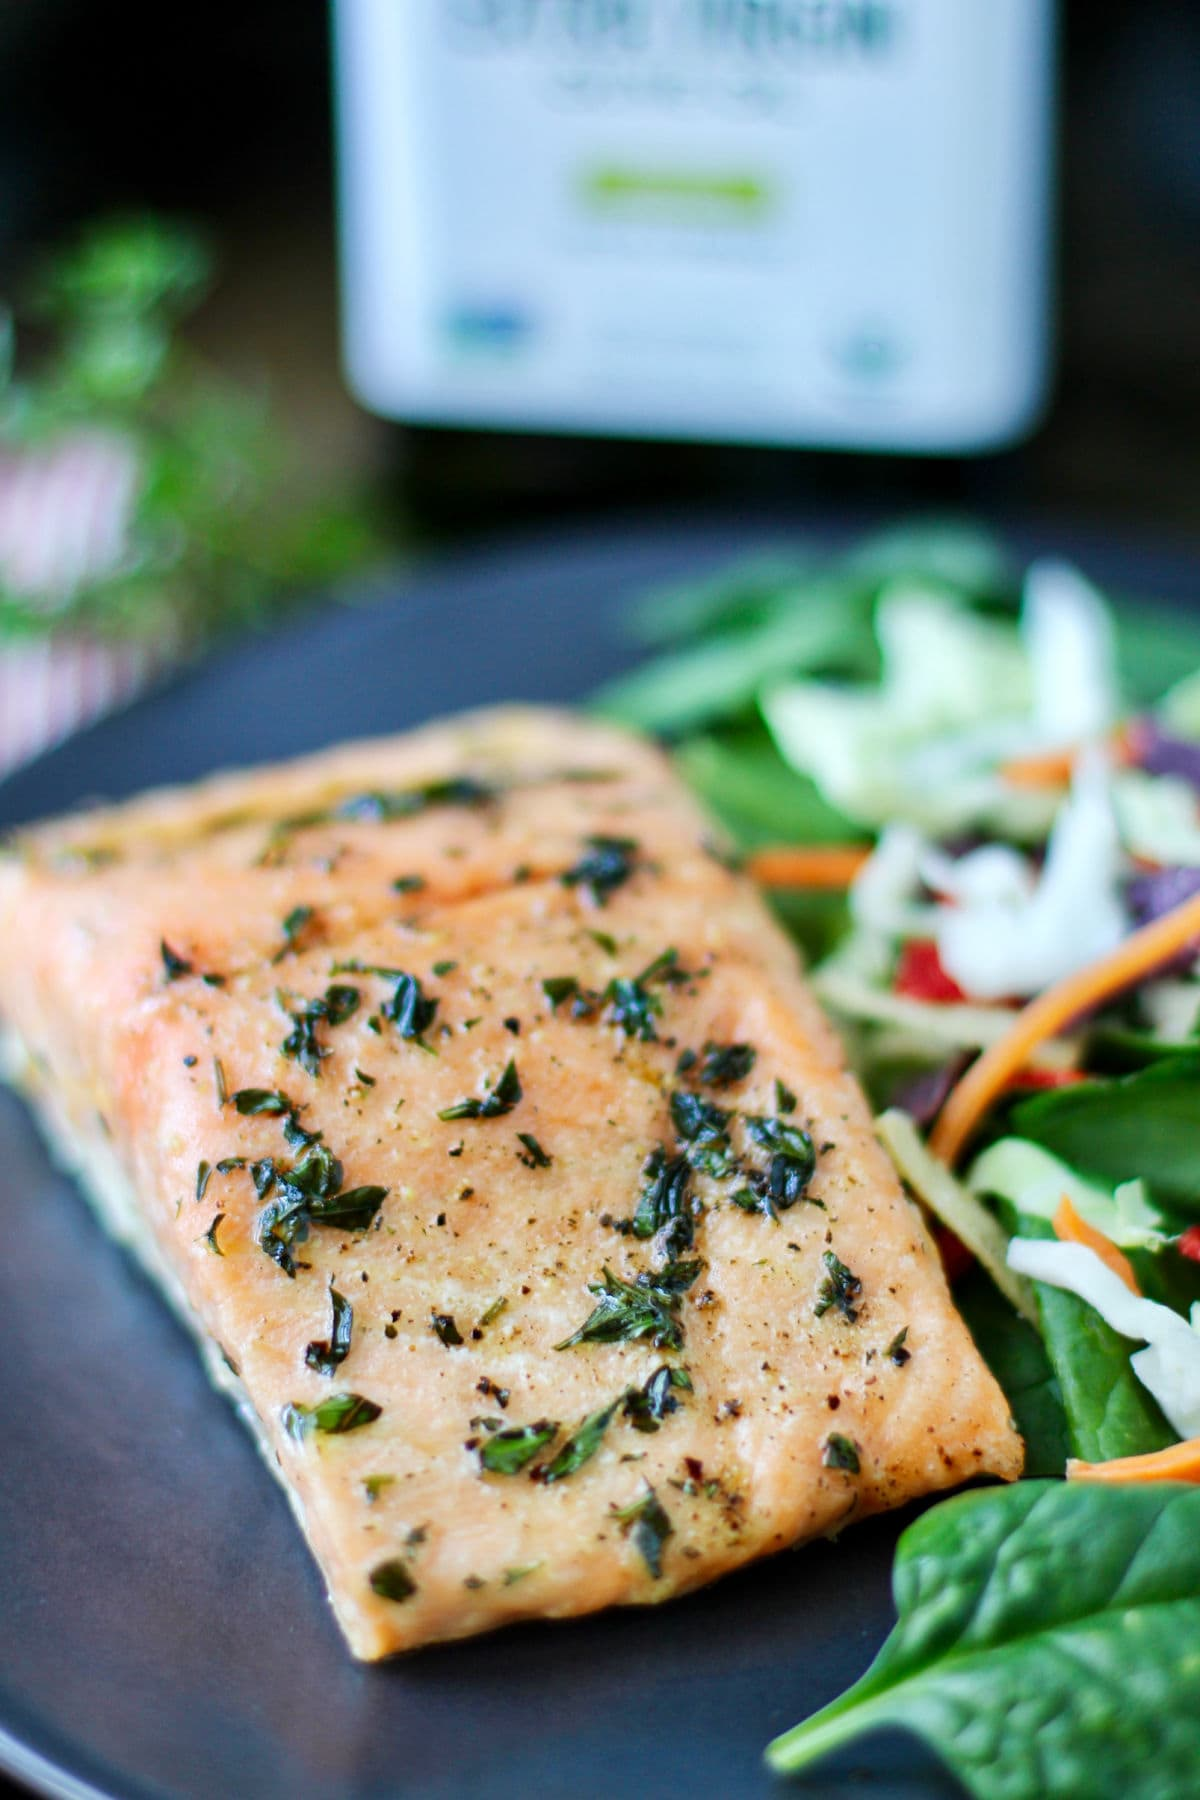 Slow Roasted Salmon with Garlic Butter and Herbs